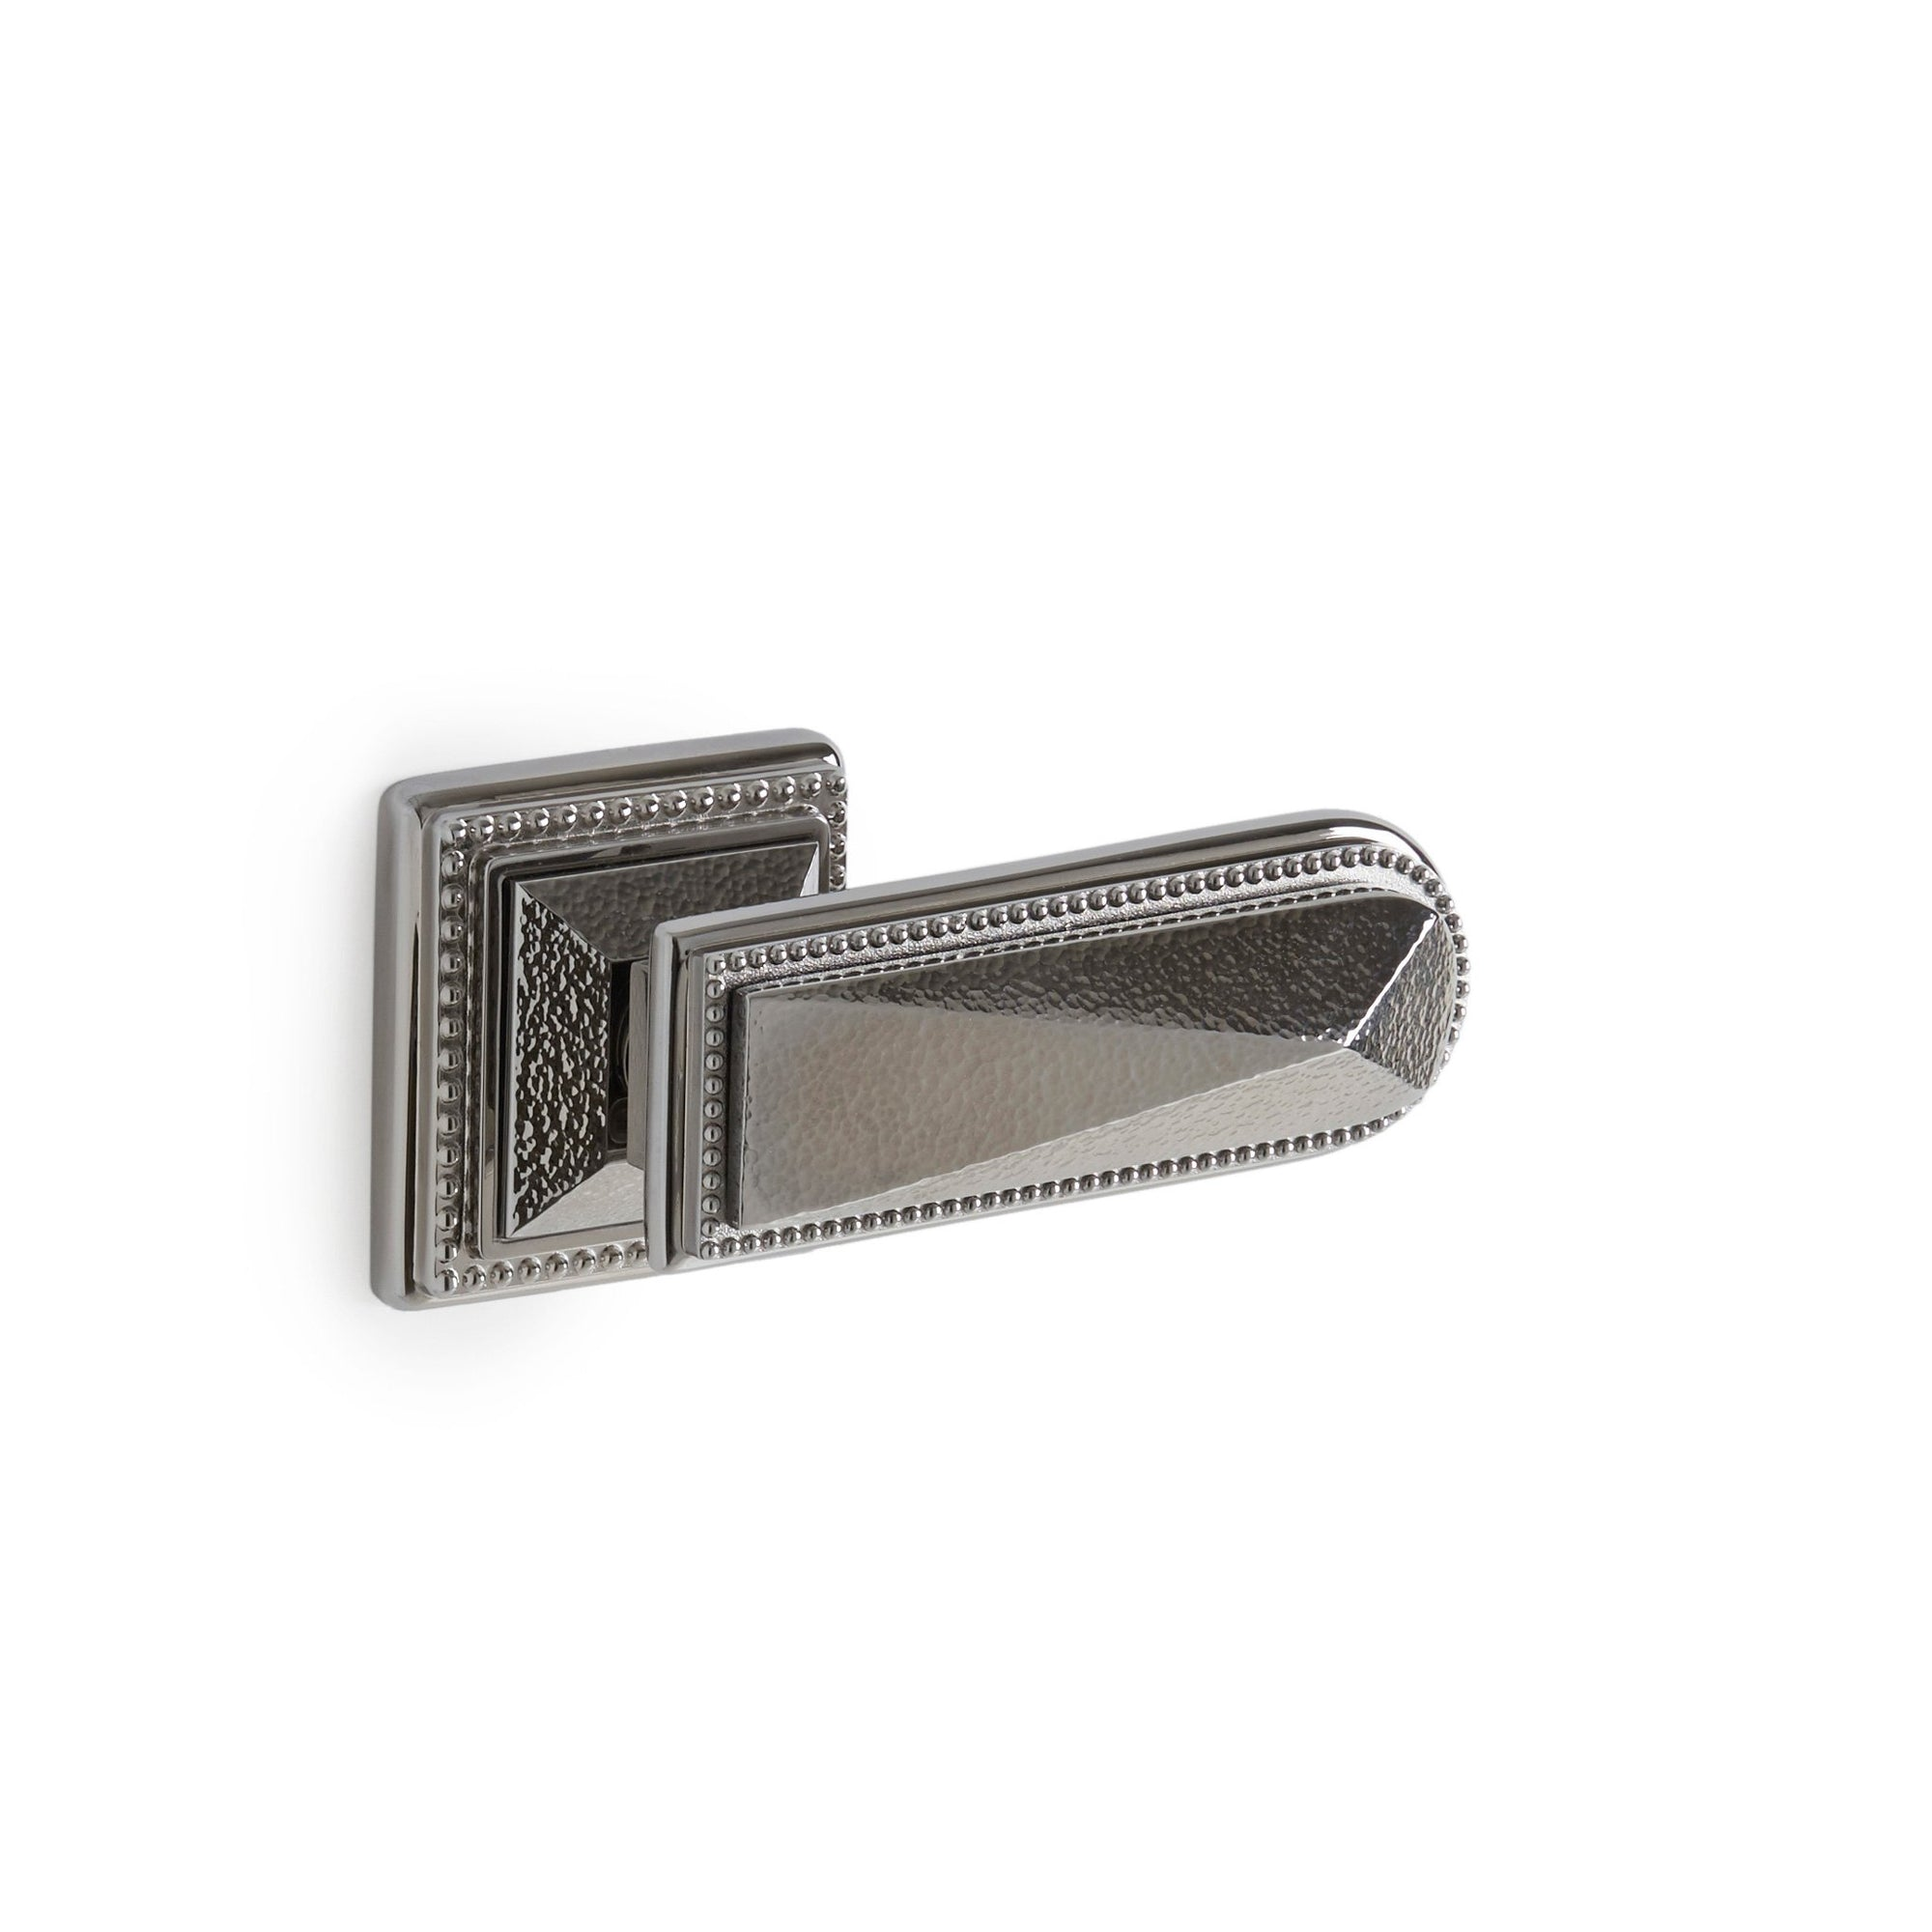 2050DOR-RH-HMRD-CP Sherle Wagner International Hammered Pyramid Door Lever in Polished Chrome metal finish